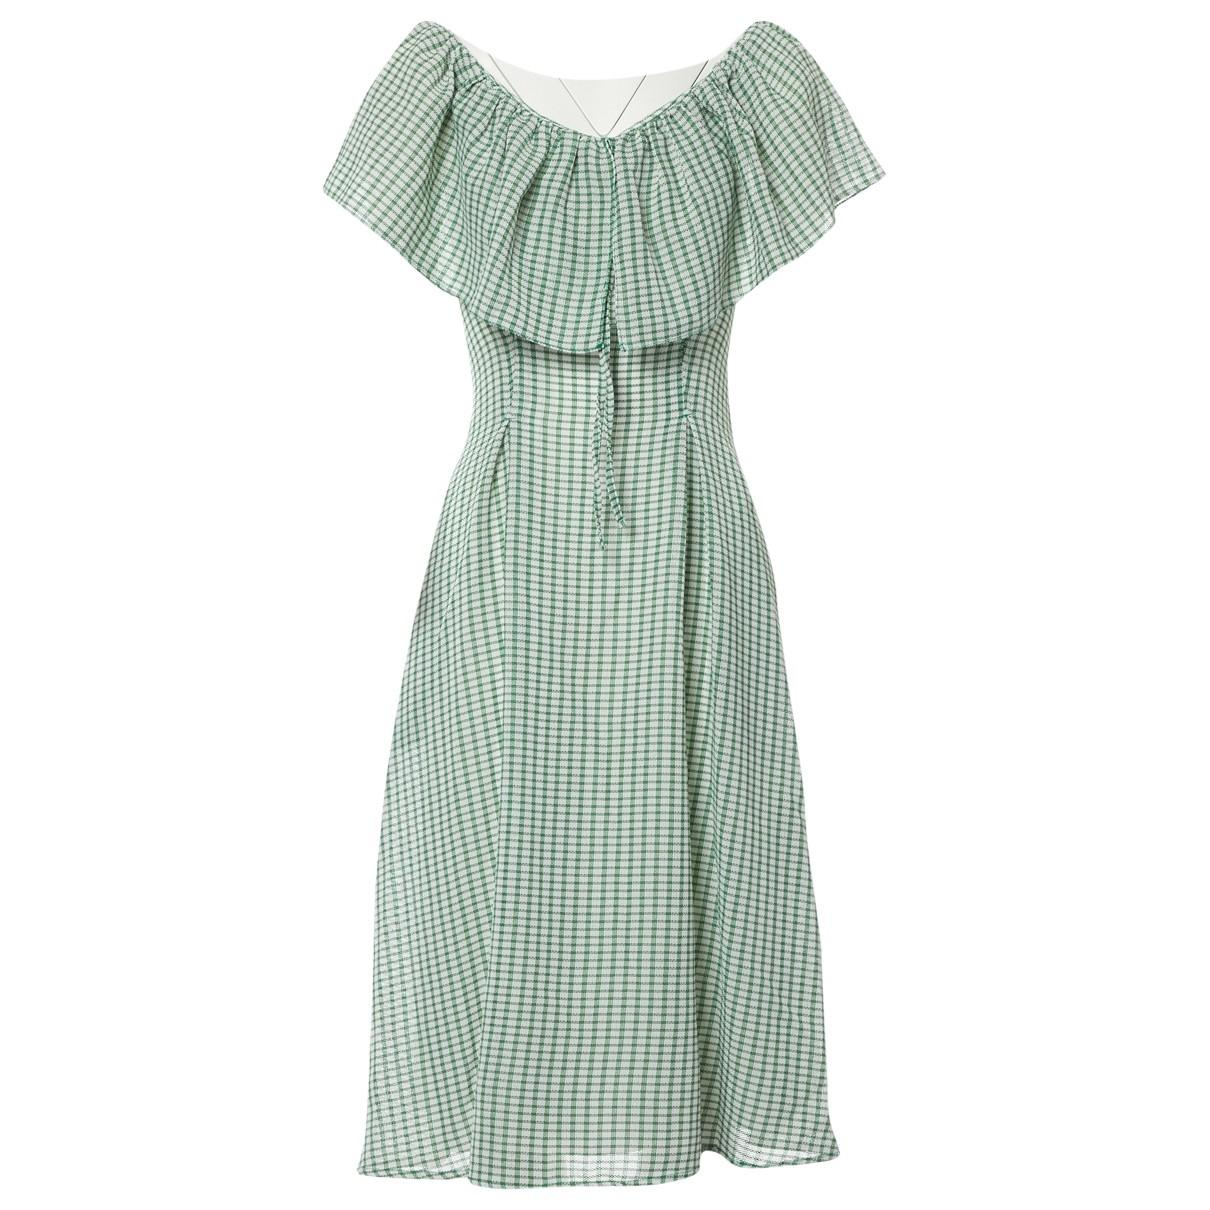 9fa11c4217b Lyst - Rejina Pyo Mid-length Dress in Green